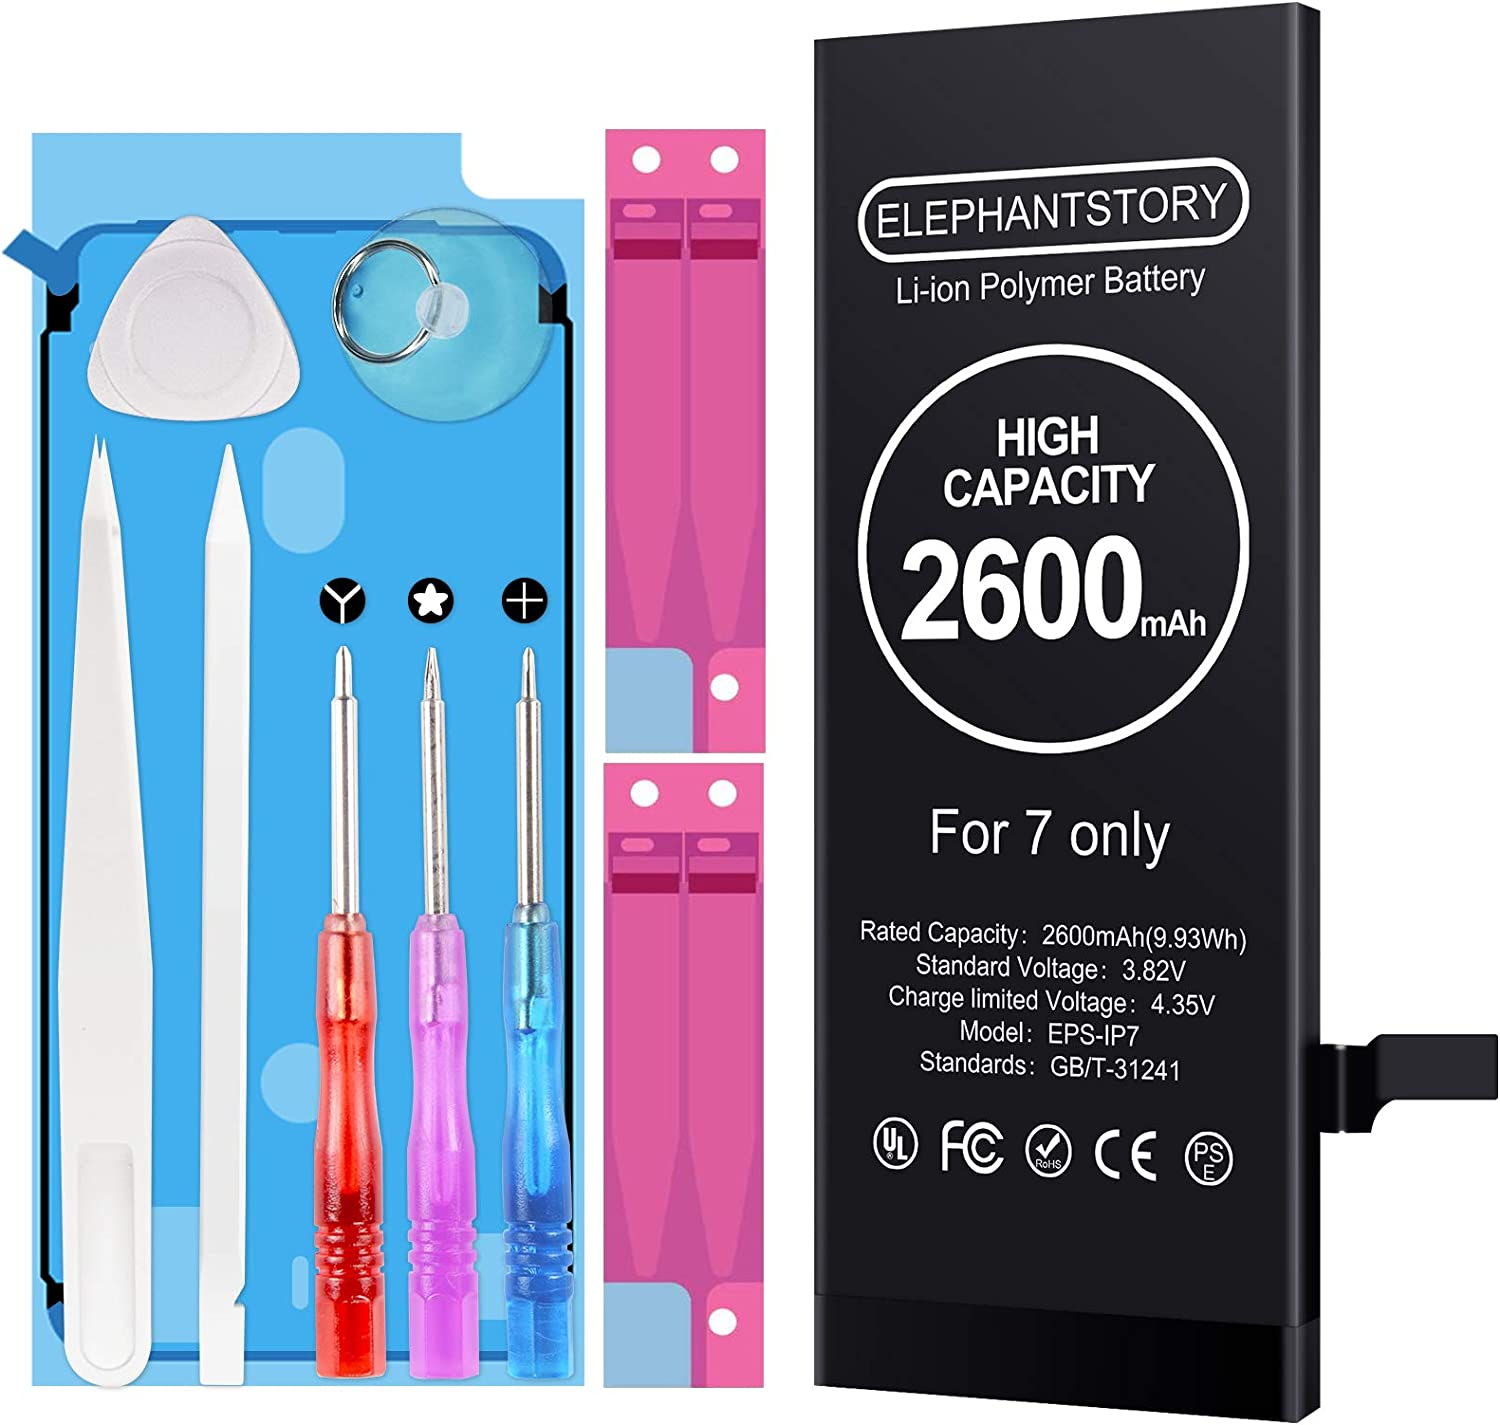 Battery for iPhone 7/7G, High Capacity 2600mAh iPhone 7 Replacement Battery New 0 Cycle fit for Model A1660, A1778, and A1779 with Professional Repair Tool Kit and Instructions Upgraded